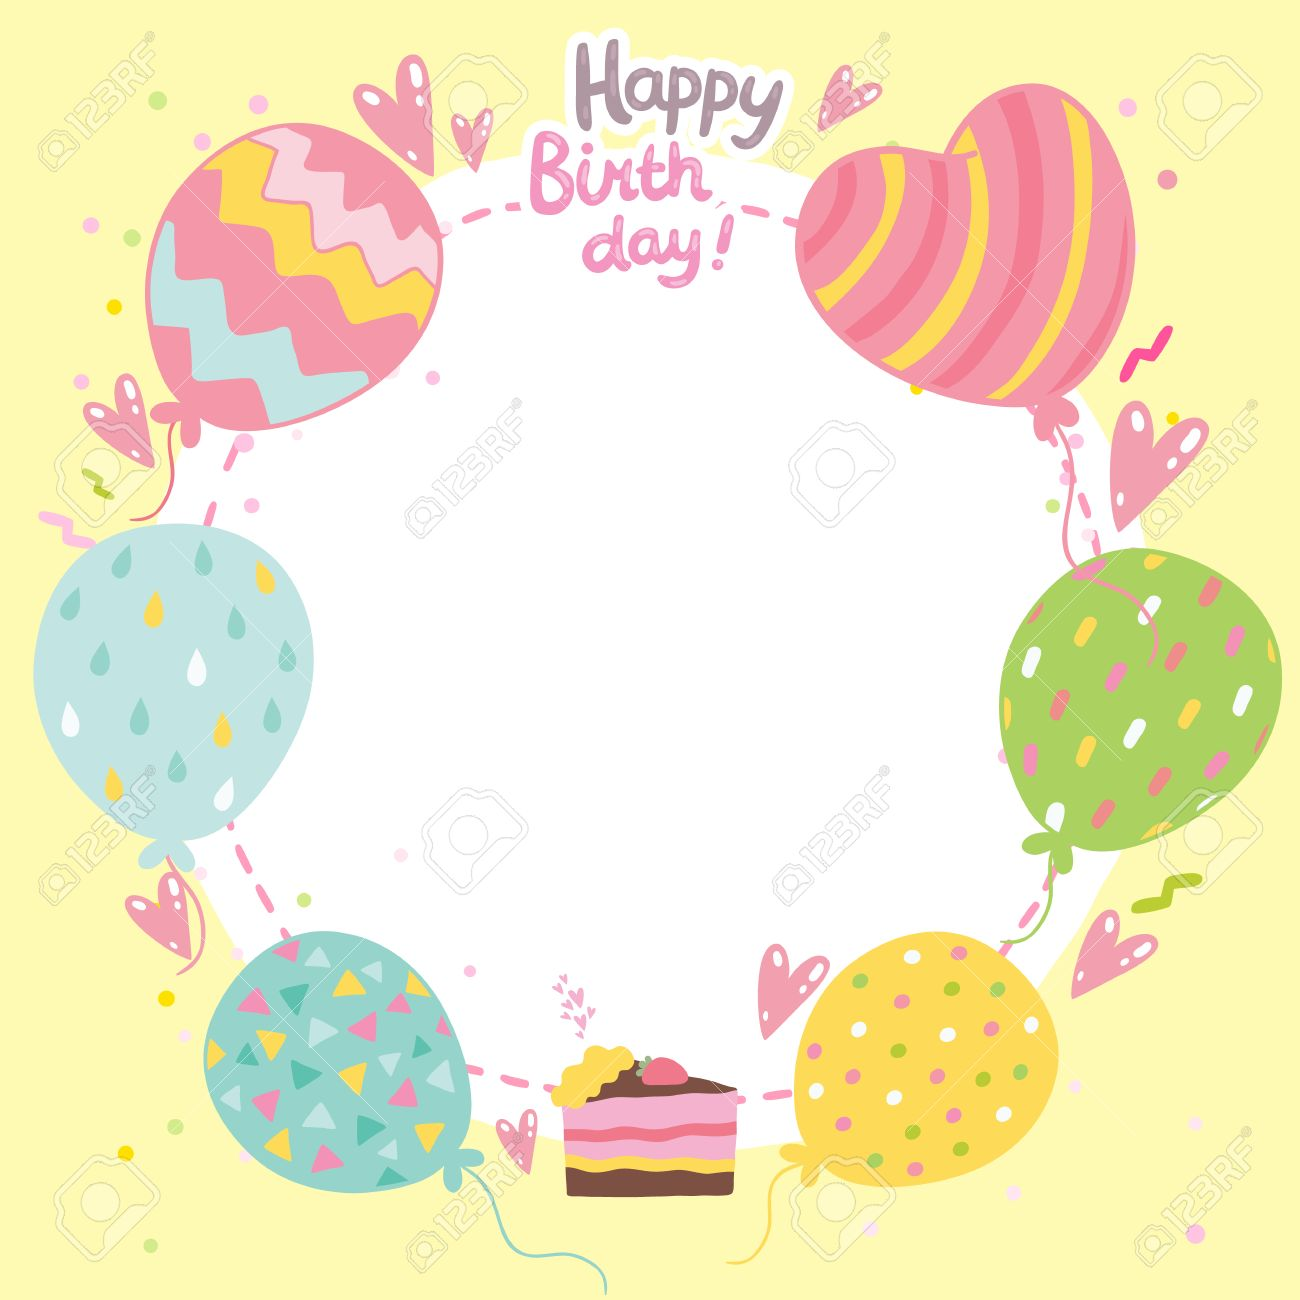 Happy Birthday Card Background With Cake And Balloons Vector